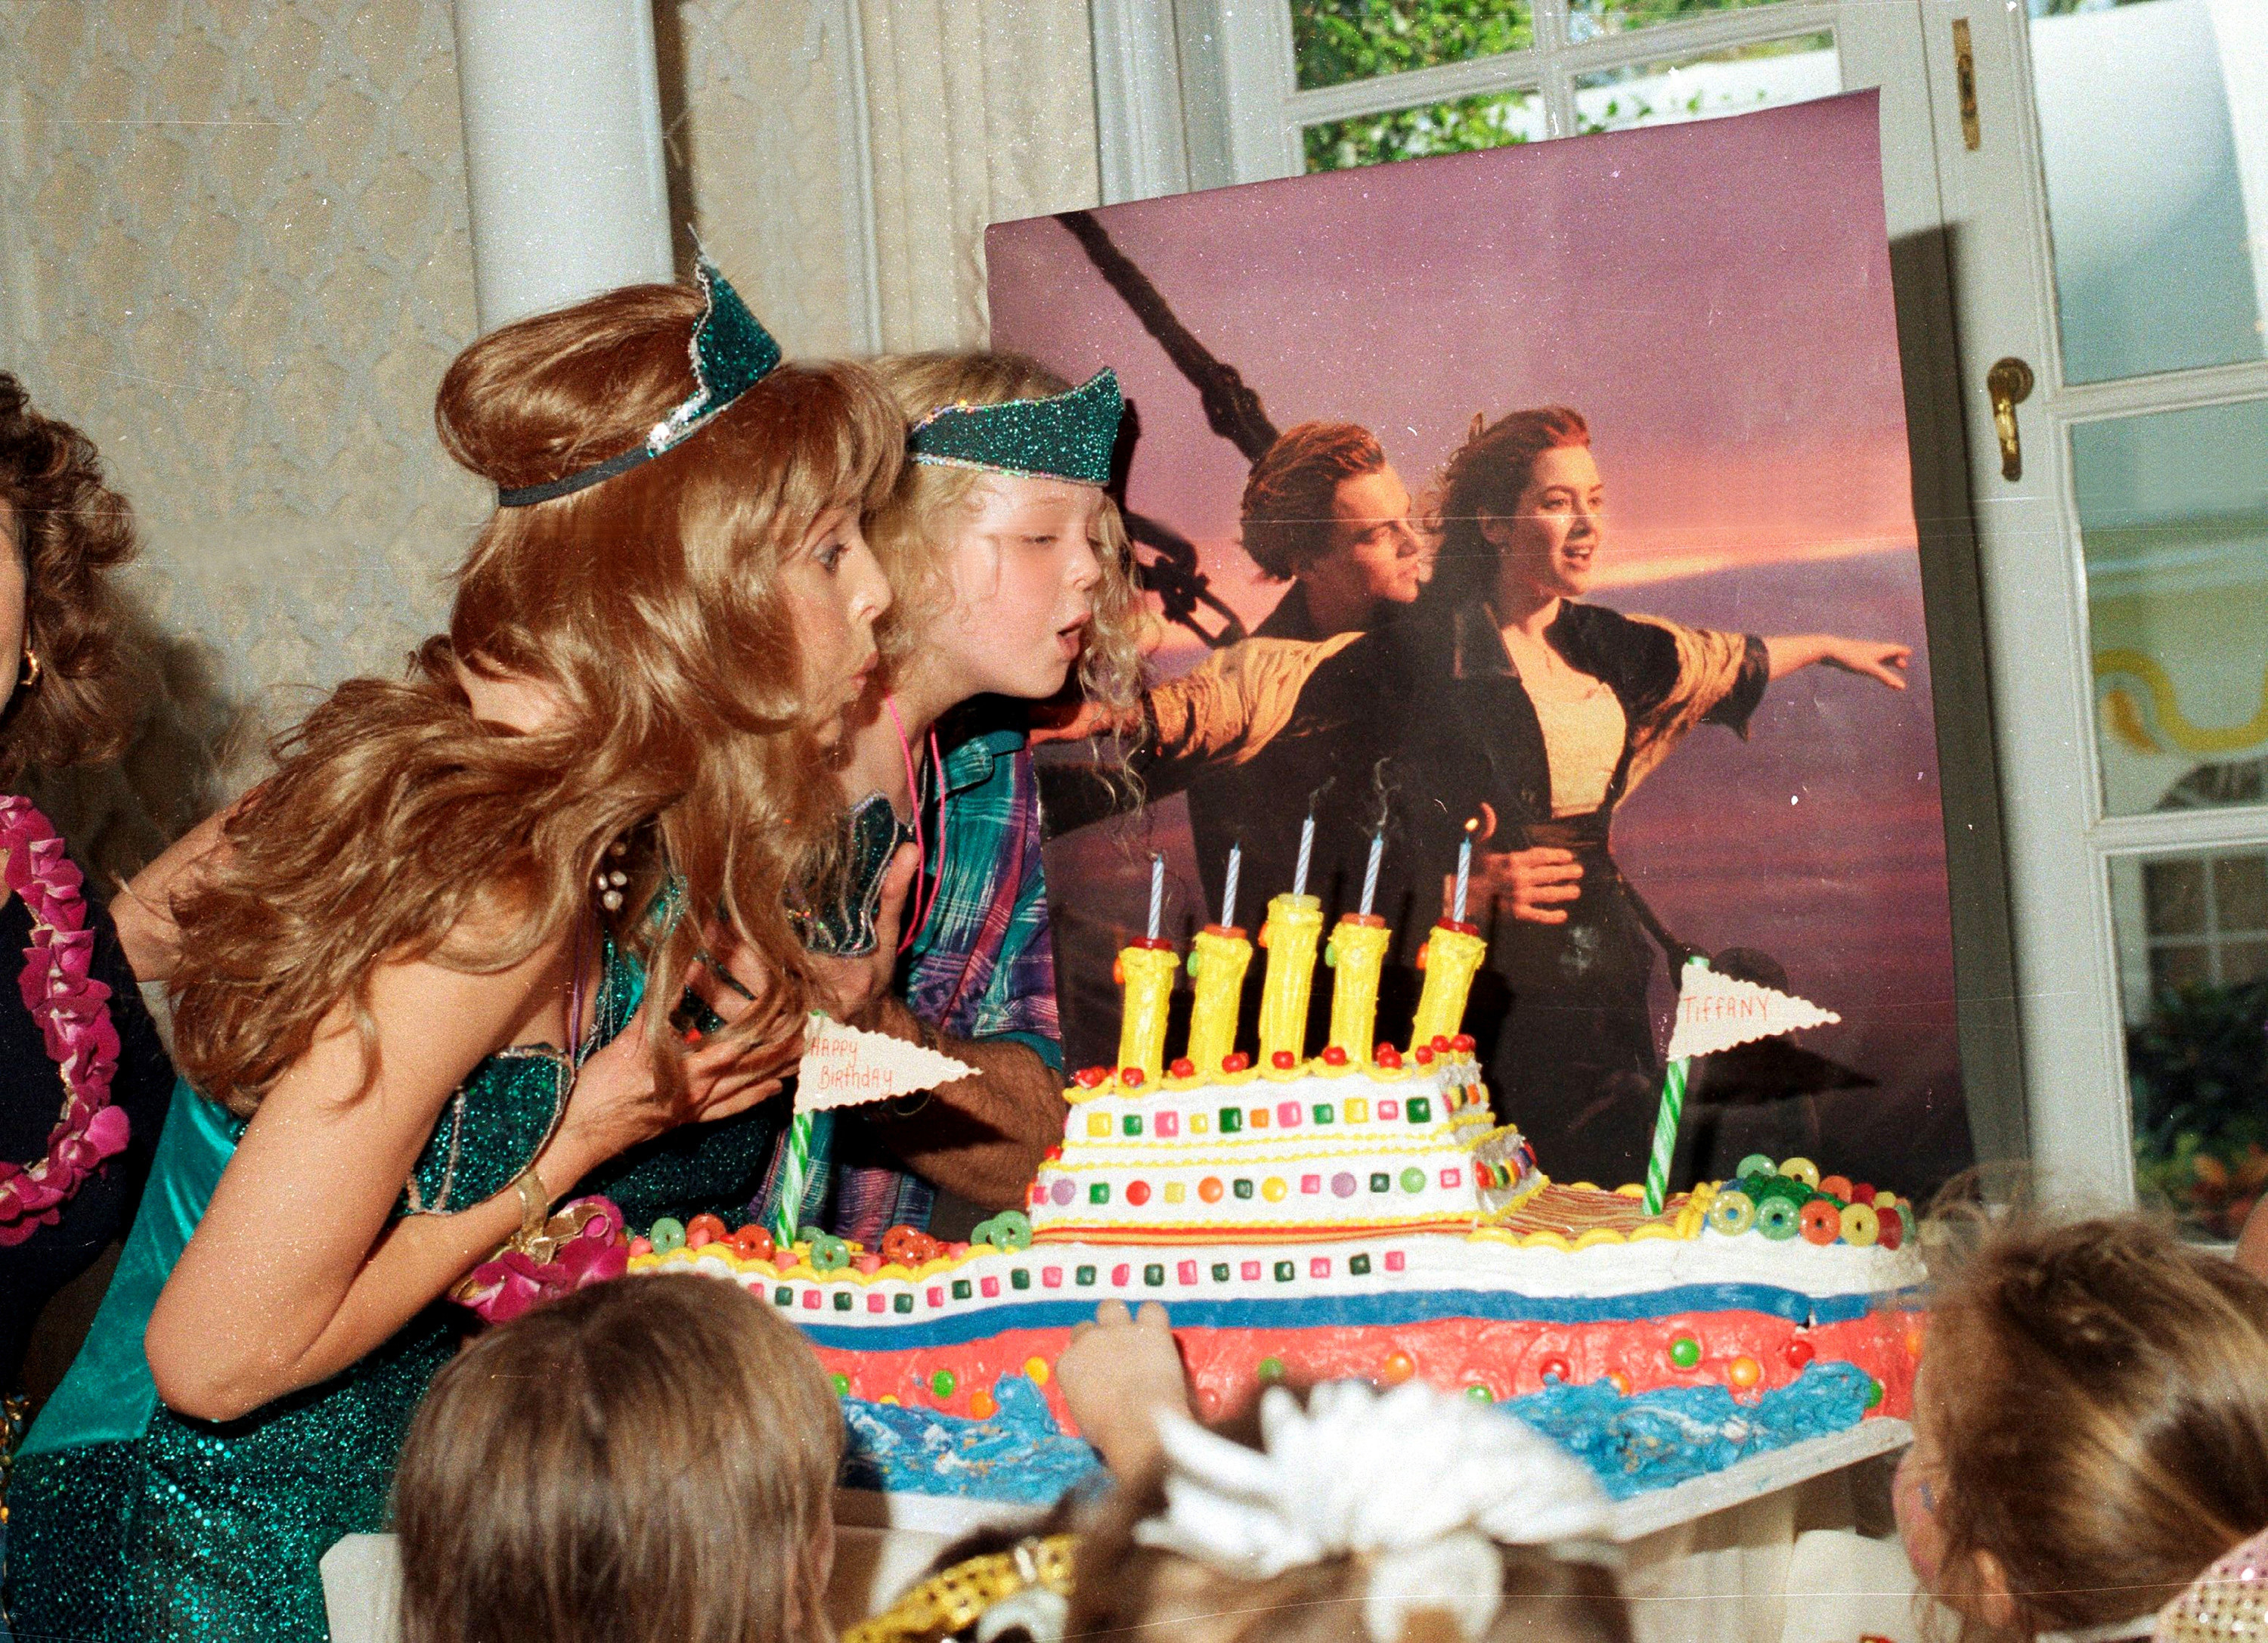 Marla Maples and Tiffany Trump blow out birthday candles on a cake shaped like a boat